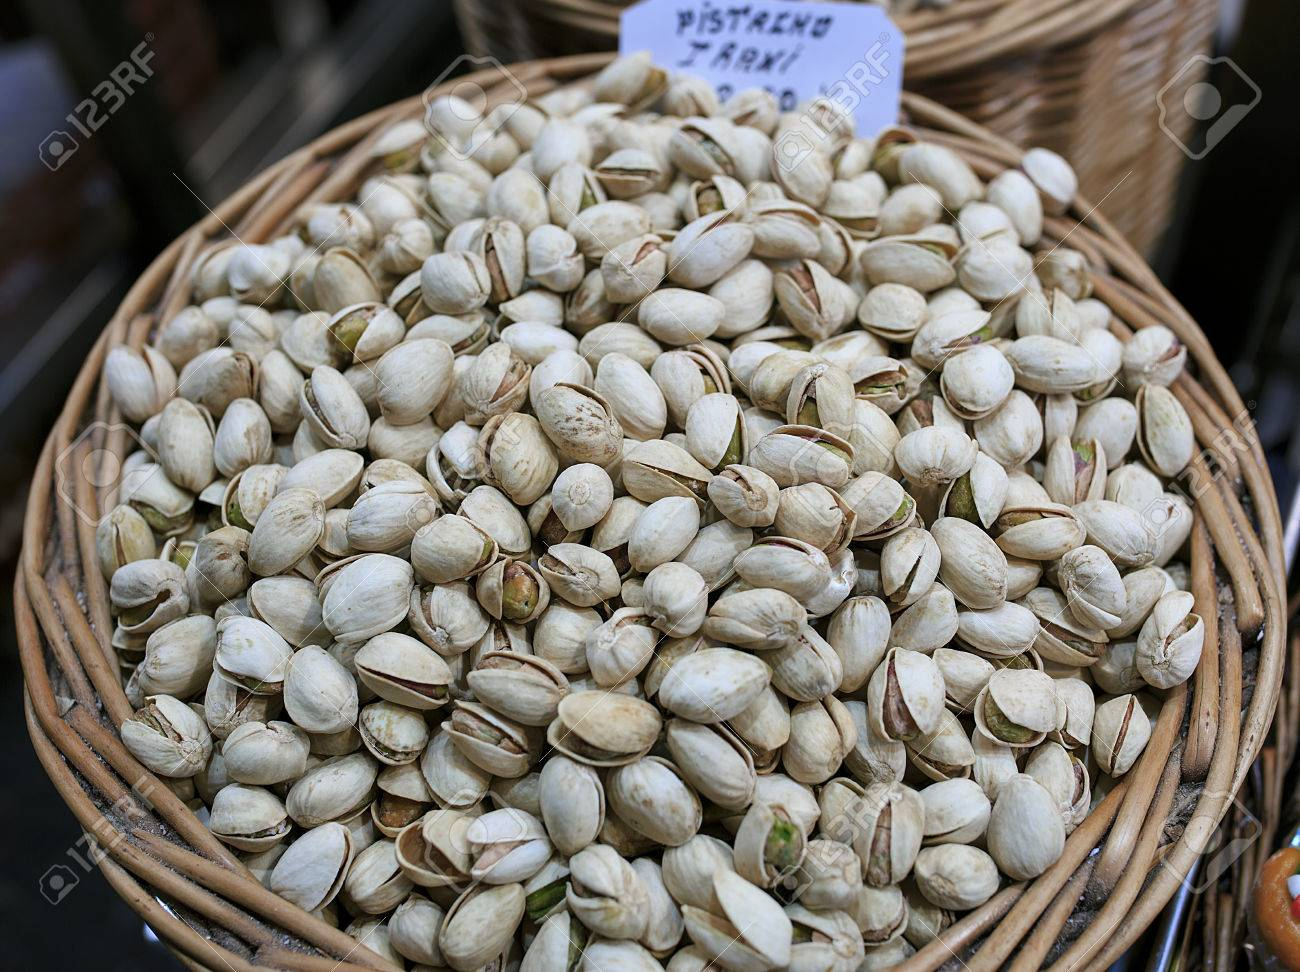 Pistaches in a market of Barcelona - 83771850